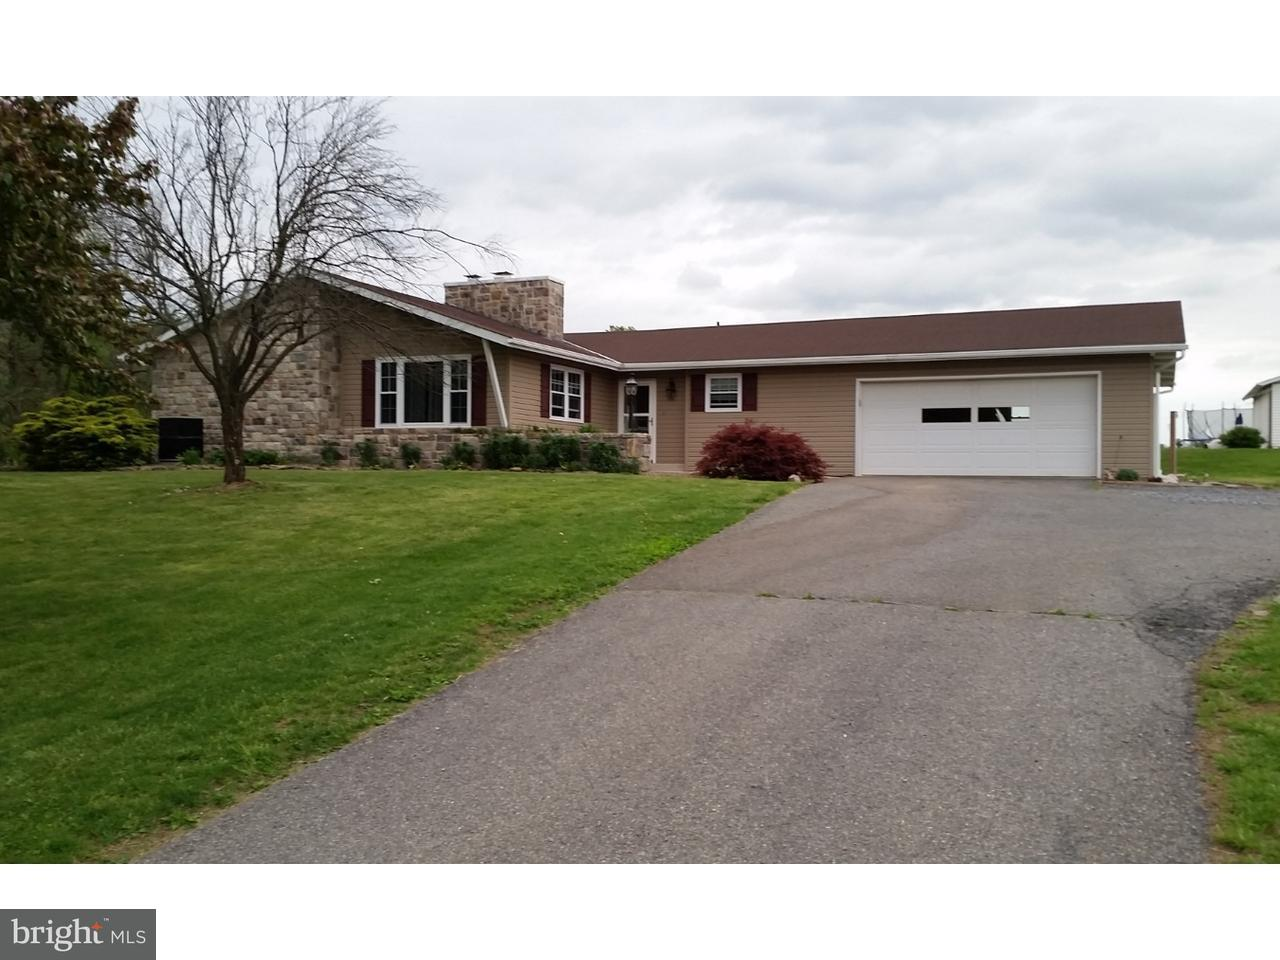 Single Family Home for Sale at 99 MAIN Street Oley, Pennsylvania 19547 United States